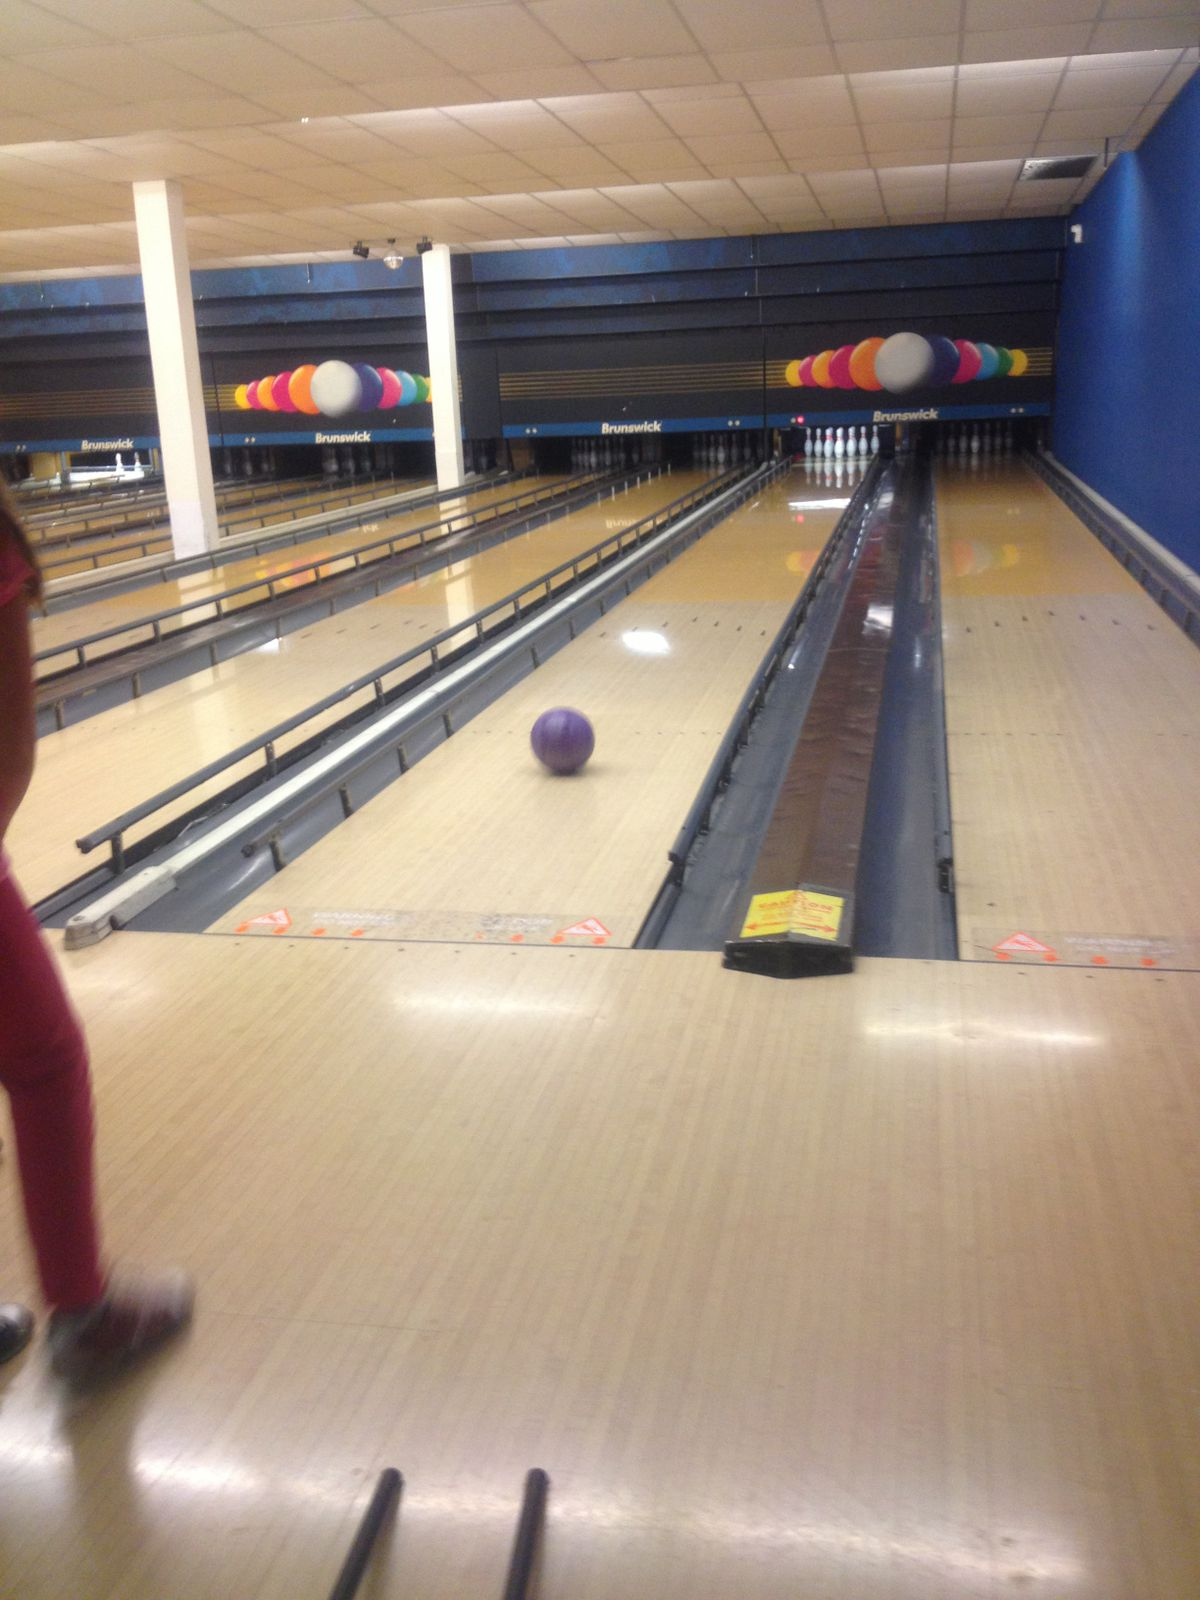 Bowling them over with #LoveCravendale